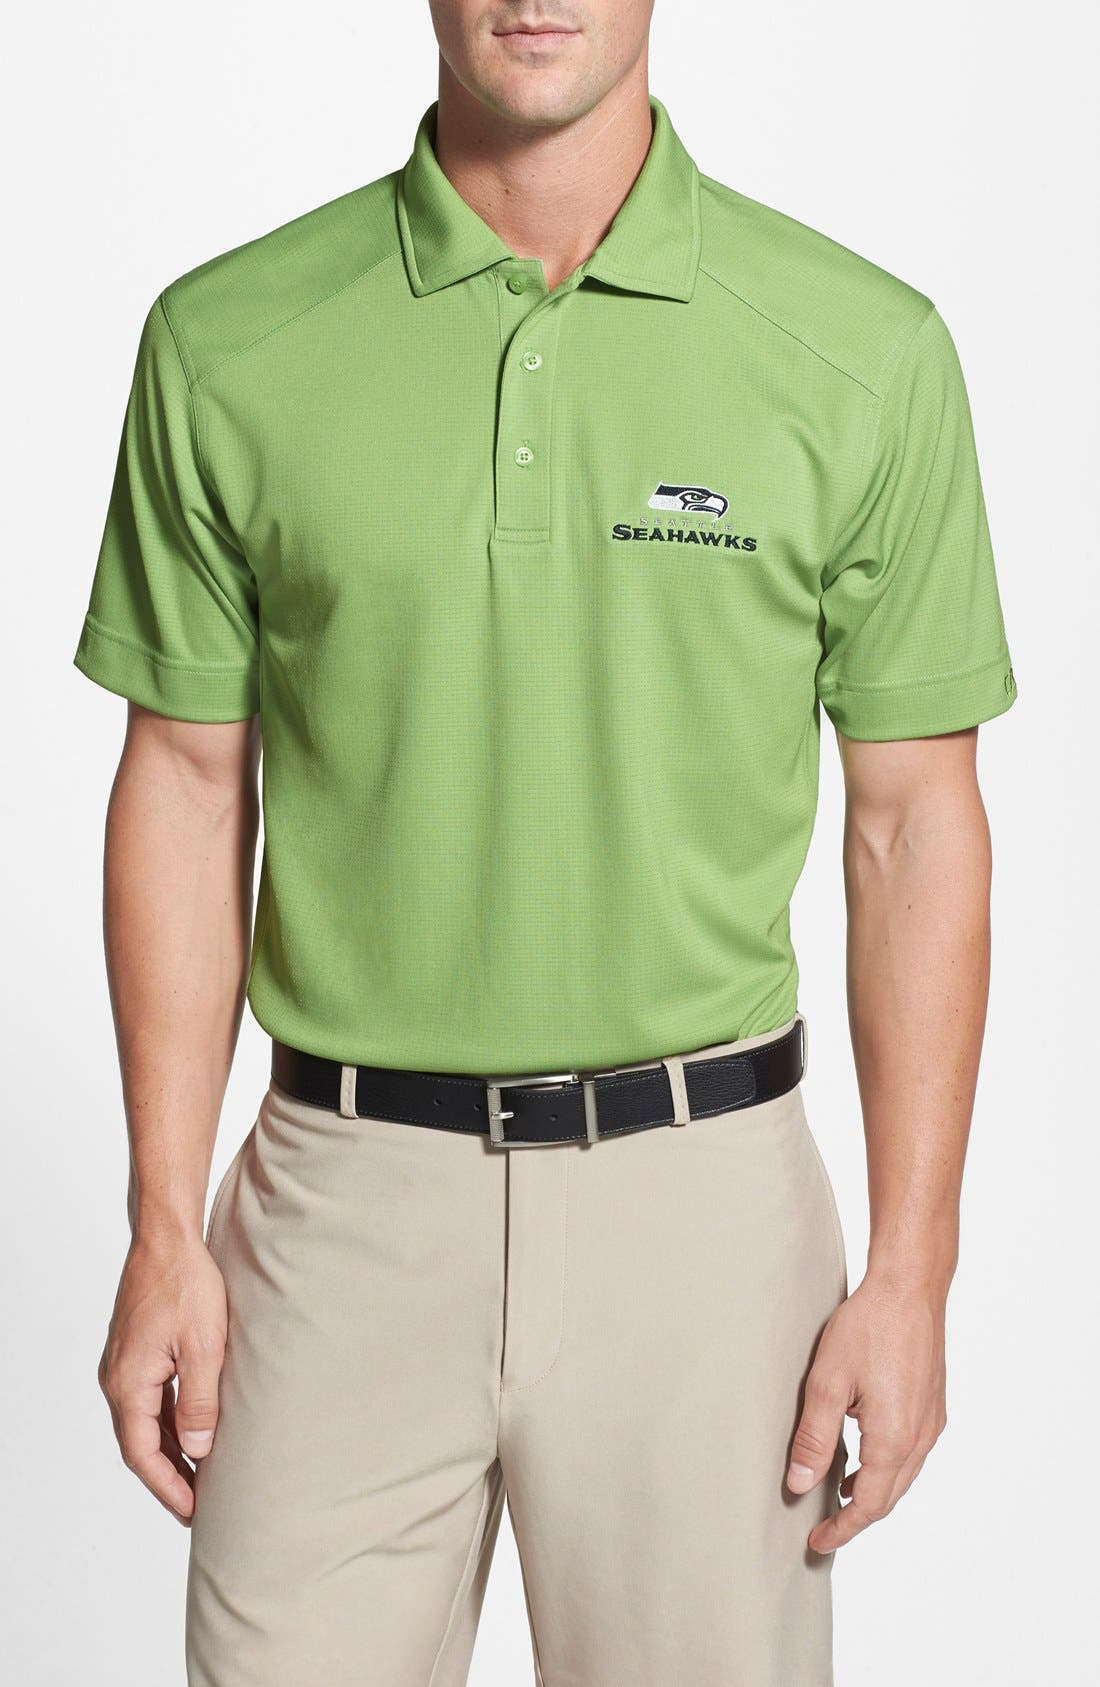 Cutter & Buck Seattle Seahawks - Genre DryTec Moisture Wicking Polo